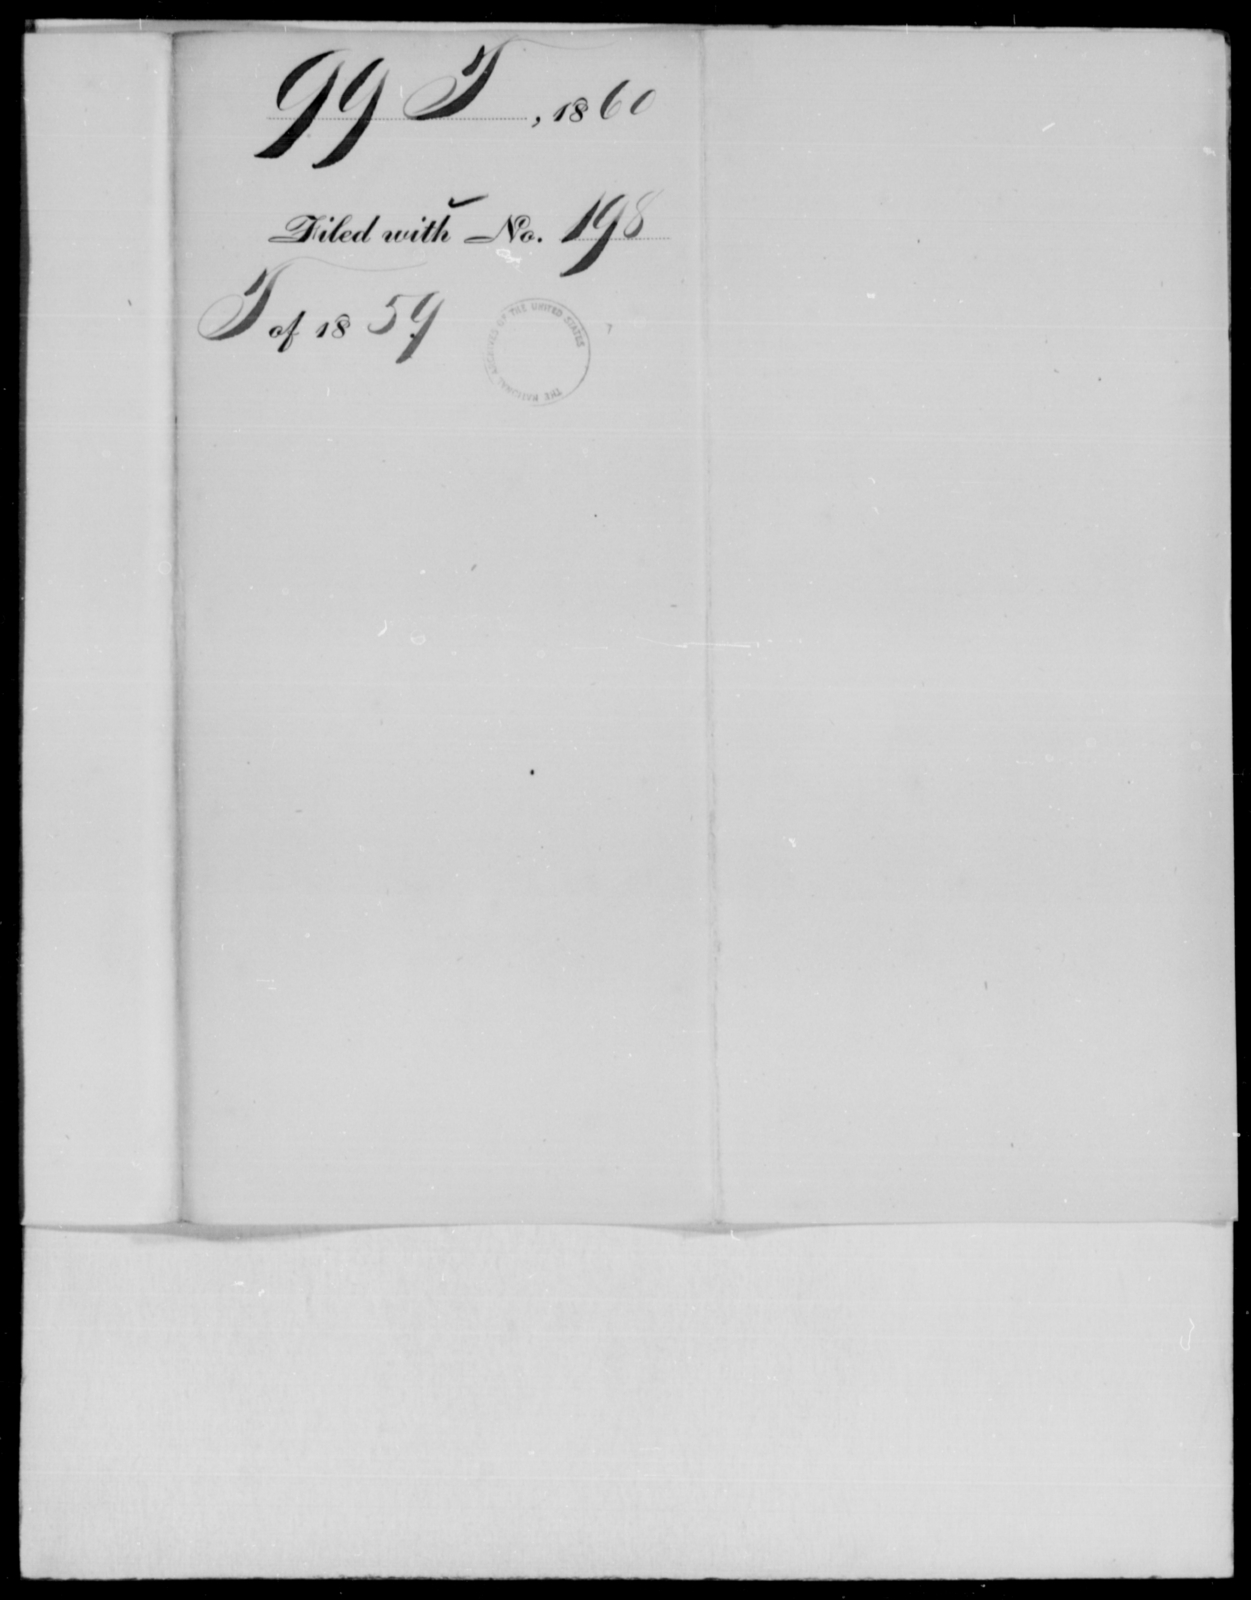 [Blank], [Blank] - State: [Blank] - Year: 1860 - File Number: T99